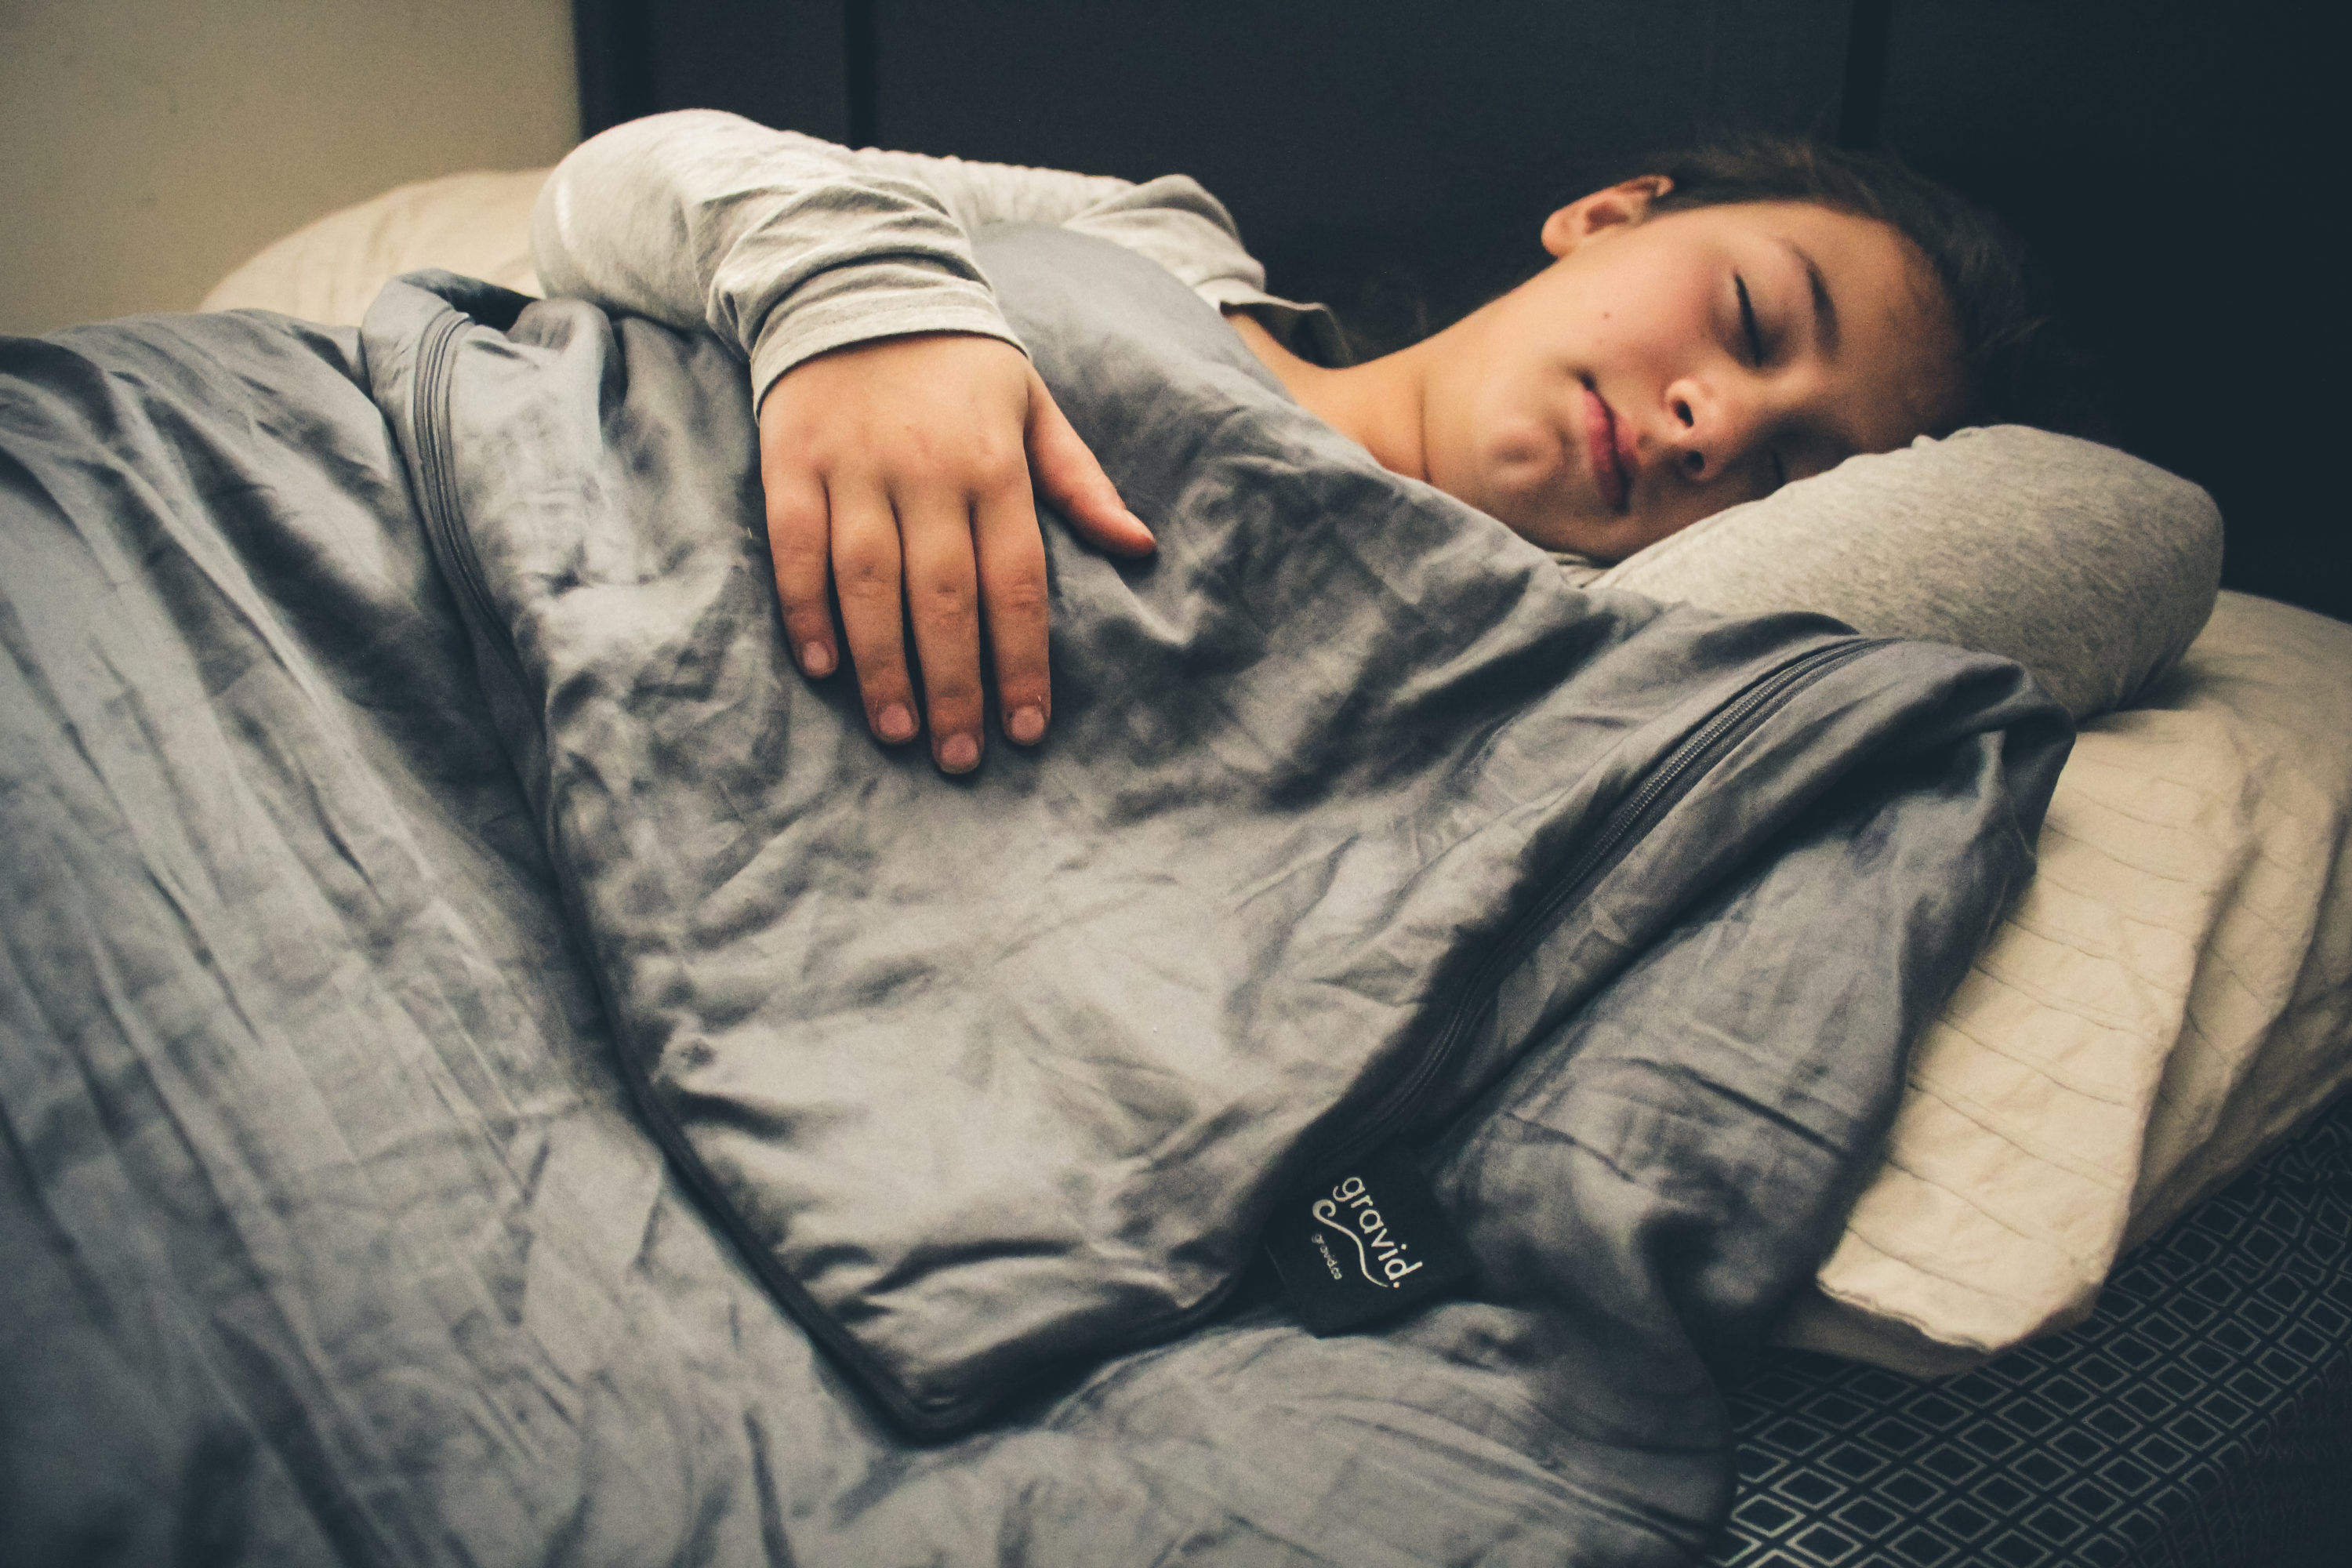 Gravid Weighted Blanket — Does it Work?